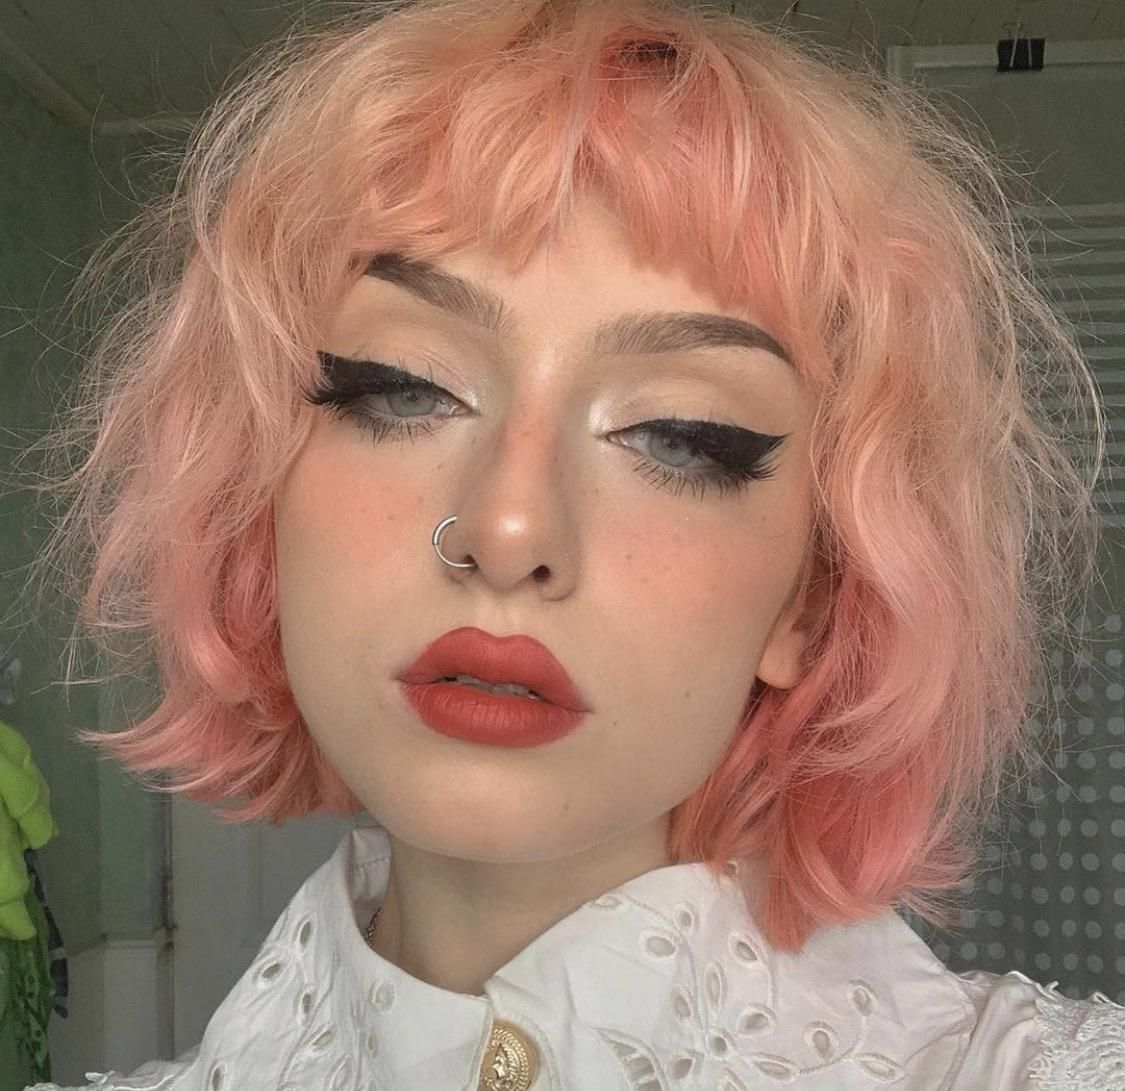 How Would I Go About Styling My Hair Like This Or Similar To This Also How Would You Describe The Style In 2020 Aesthetic Hair Pink Short Hair Pastel Pink Hair